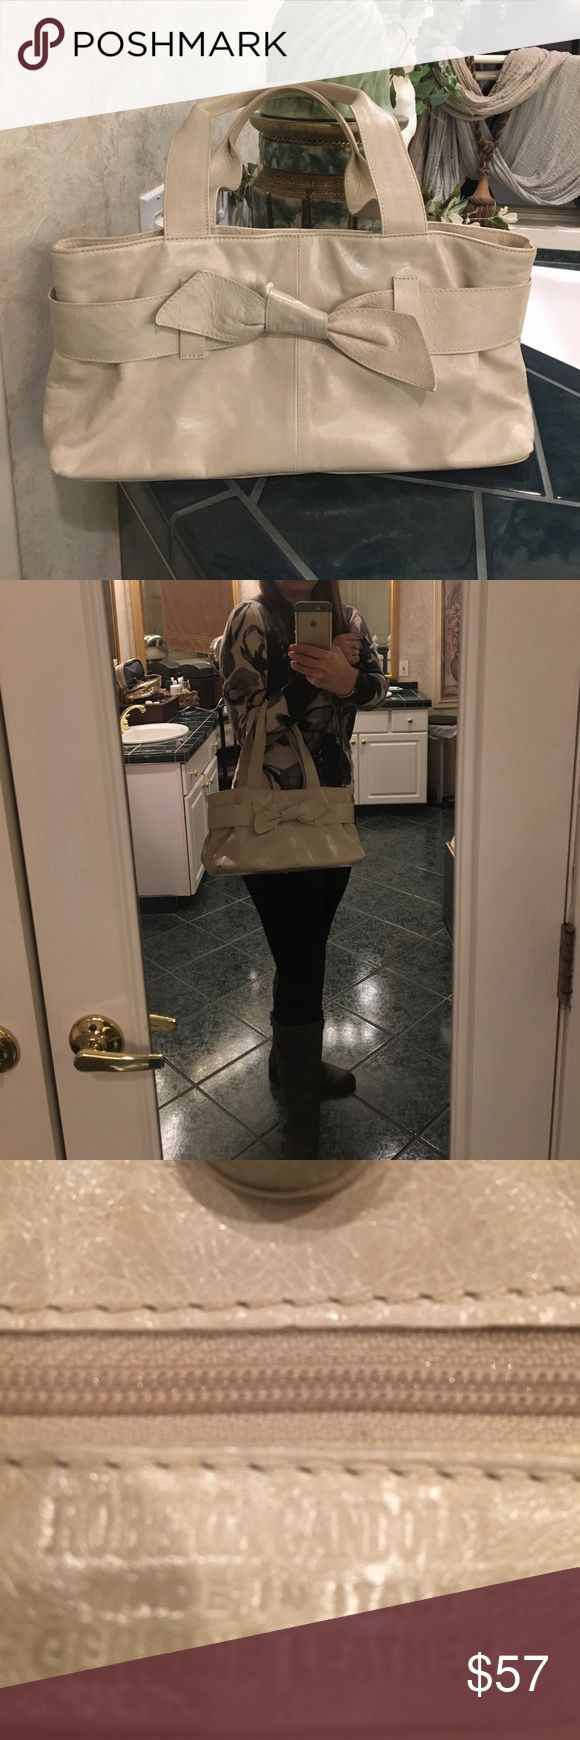 Cream leather purse Roberto Gandolfi made in Italy leather purse! This bag is beautiful it's a cream color it has a few marks on the inside but a lot of life left! The measurements are approximately 15 by 7! roberta gandolfi Bags Shoulder Bags